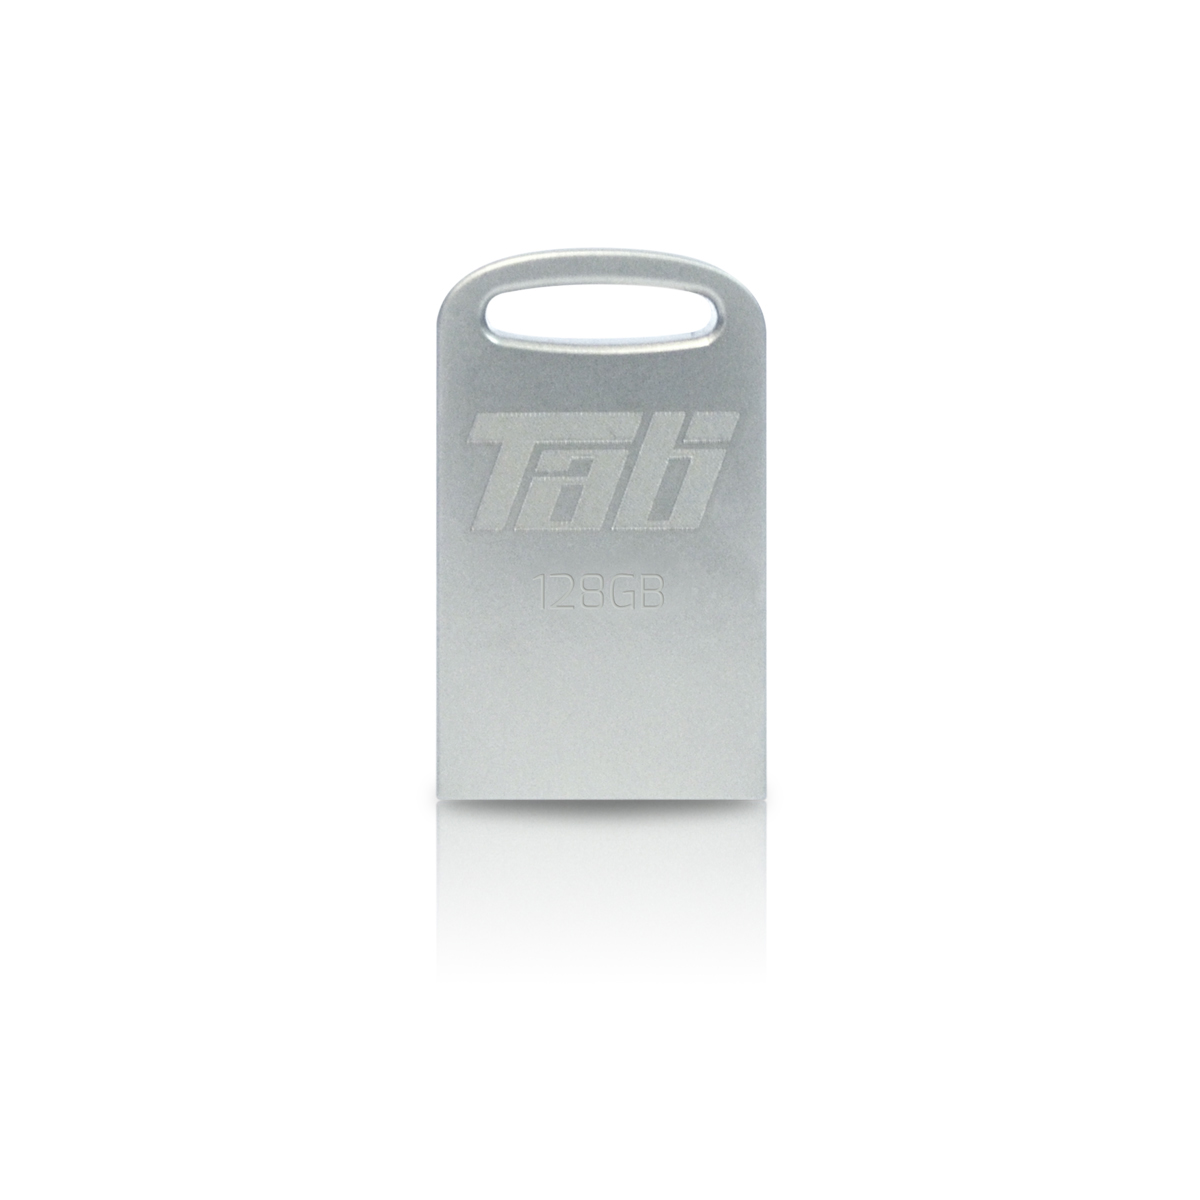 Flash disk Patriot Tab 128GB USB 3.0